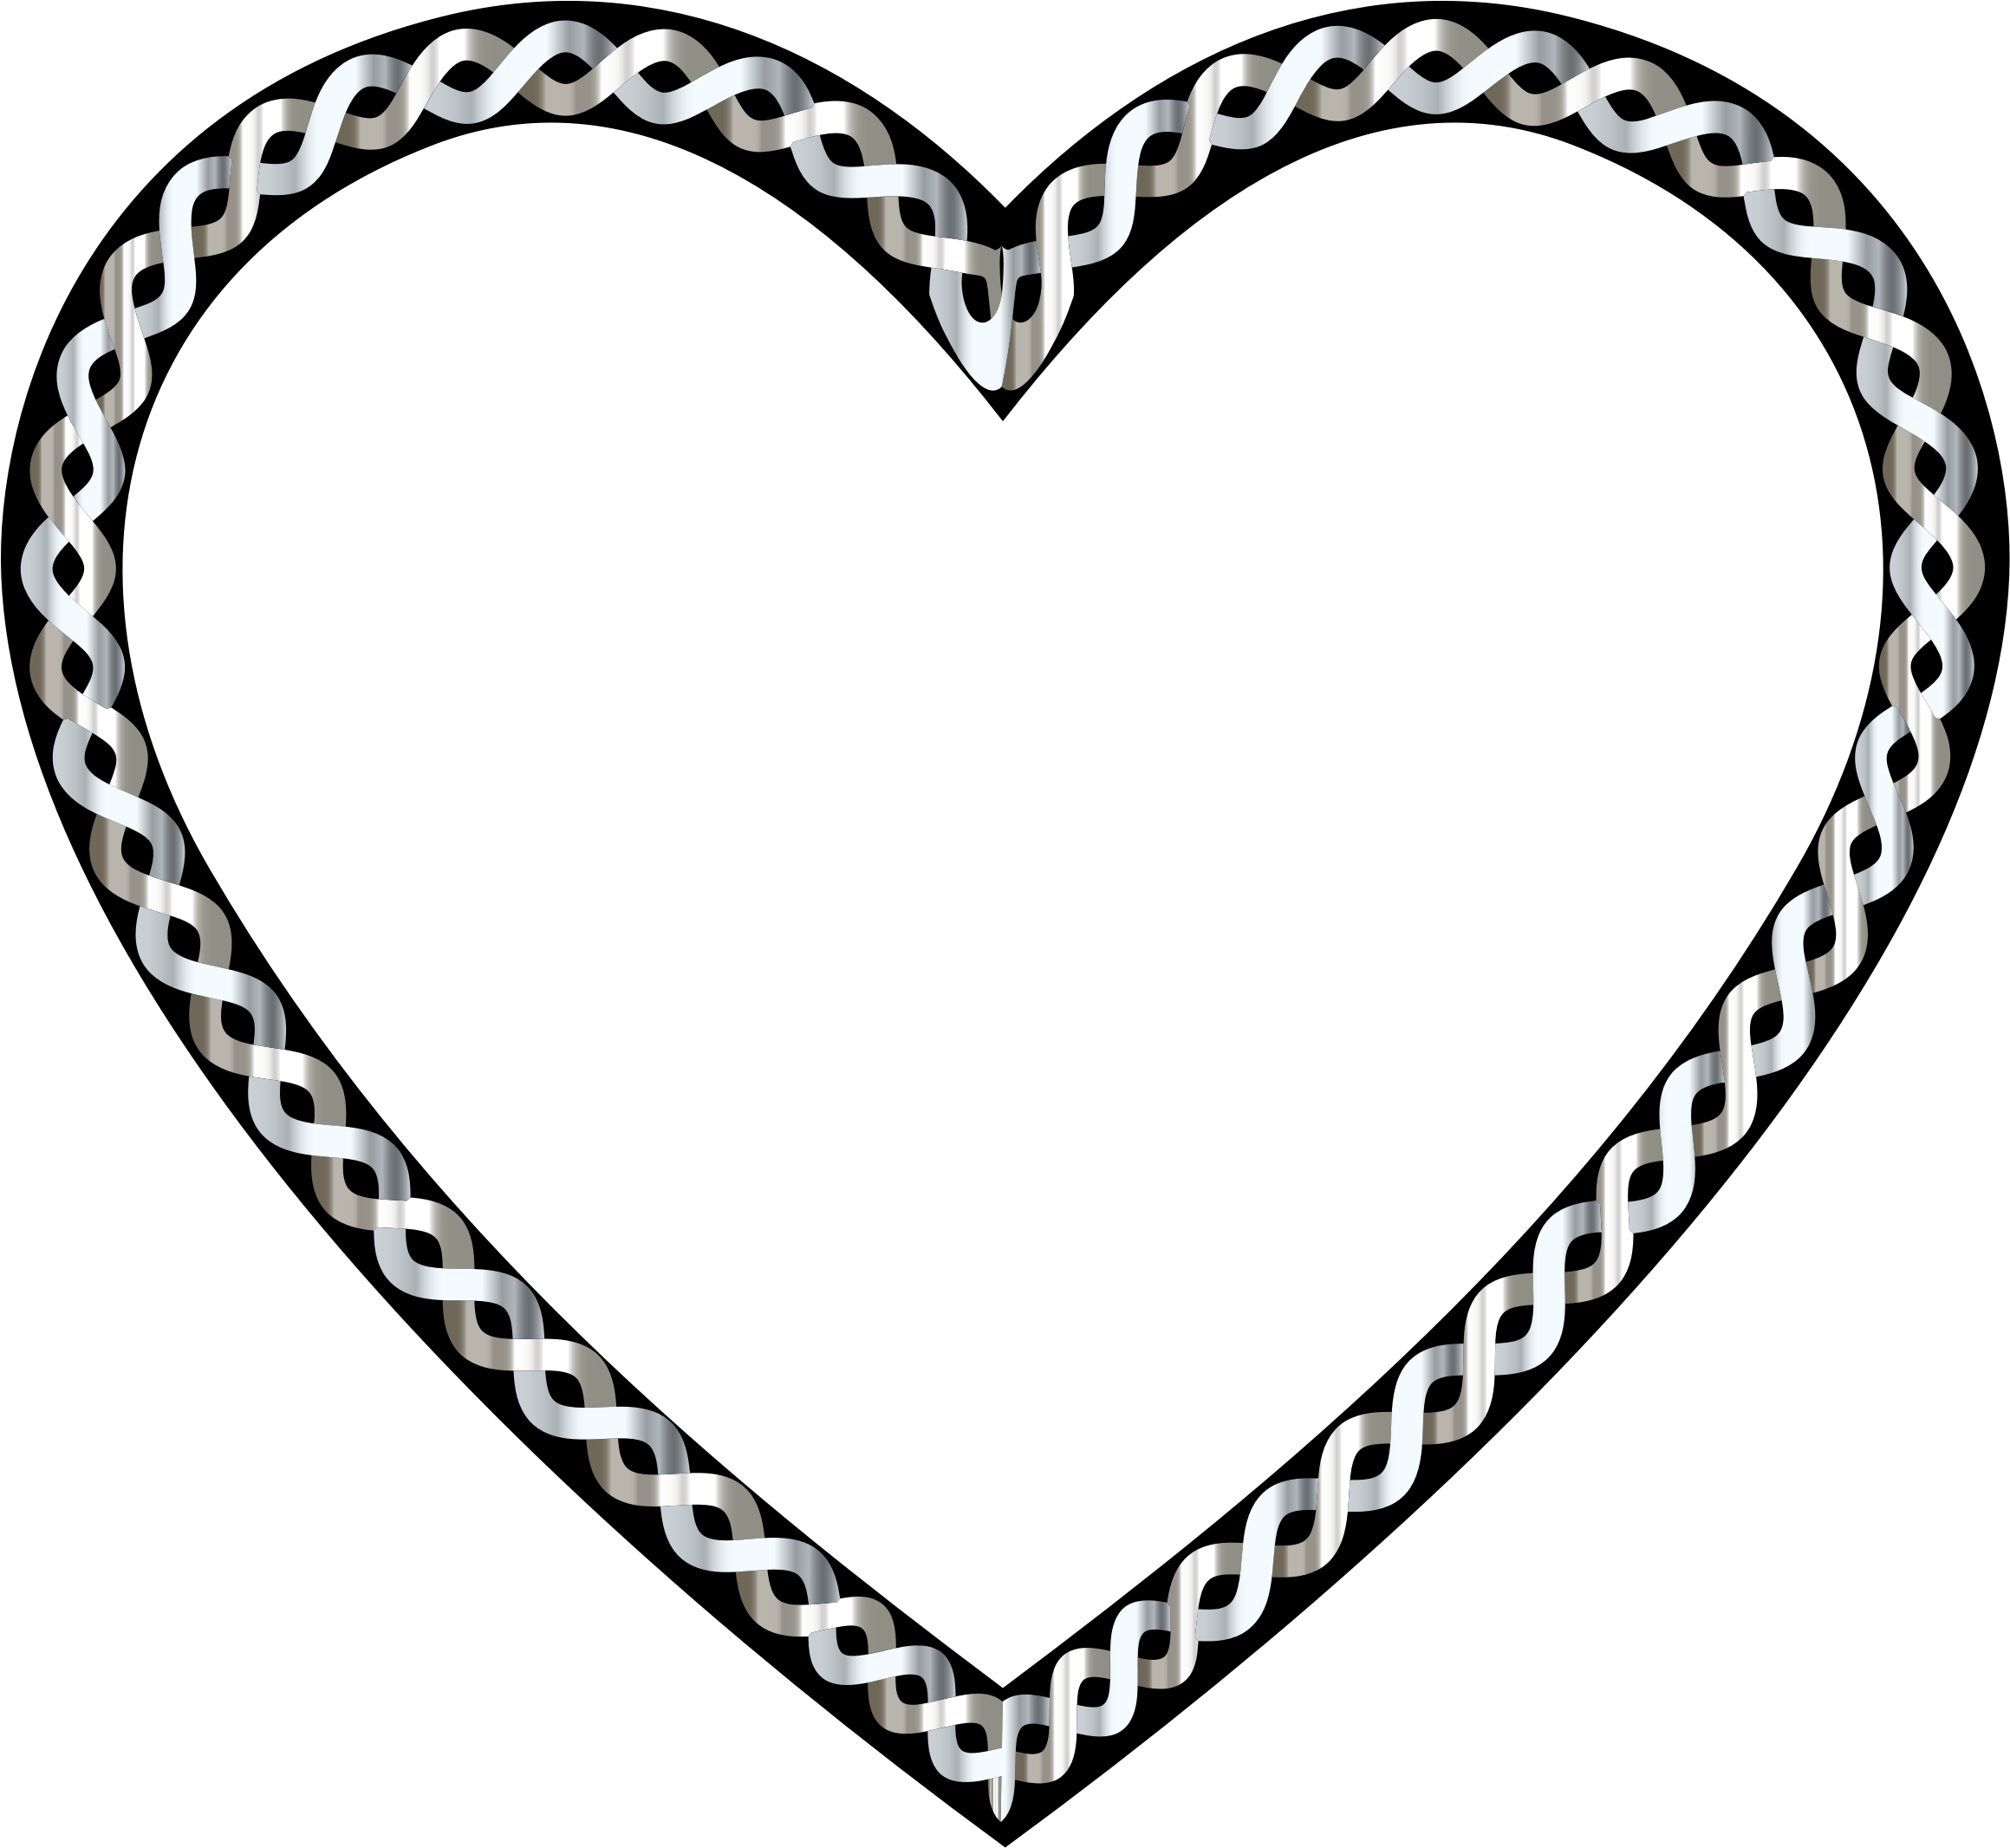 Clipart - Intertwined Heart 5 clipart transparent stock